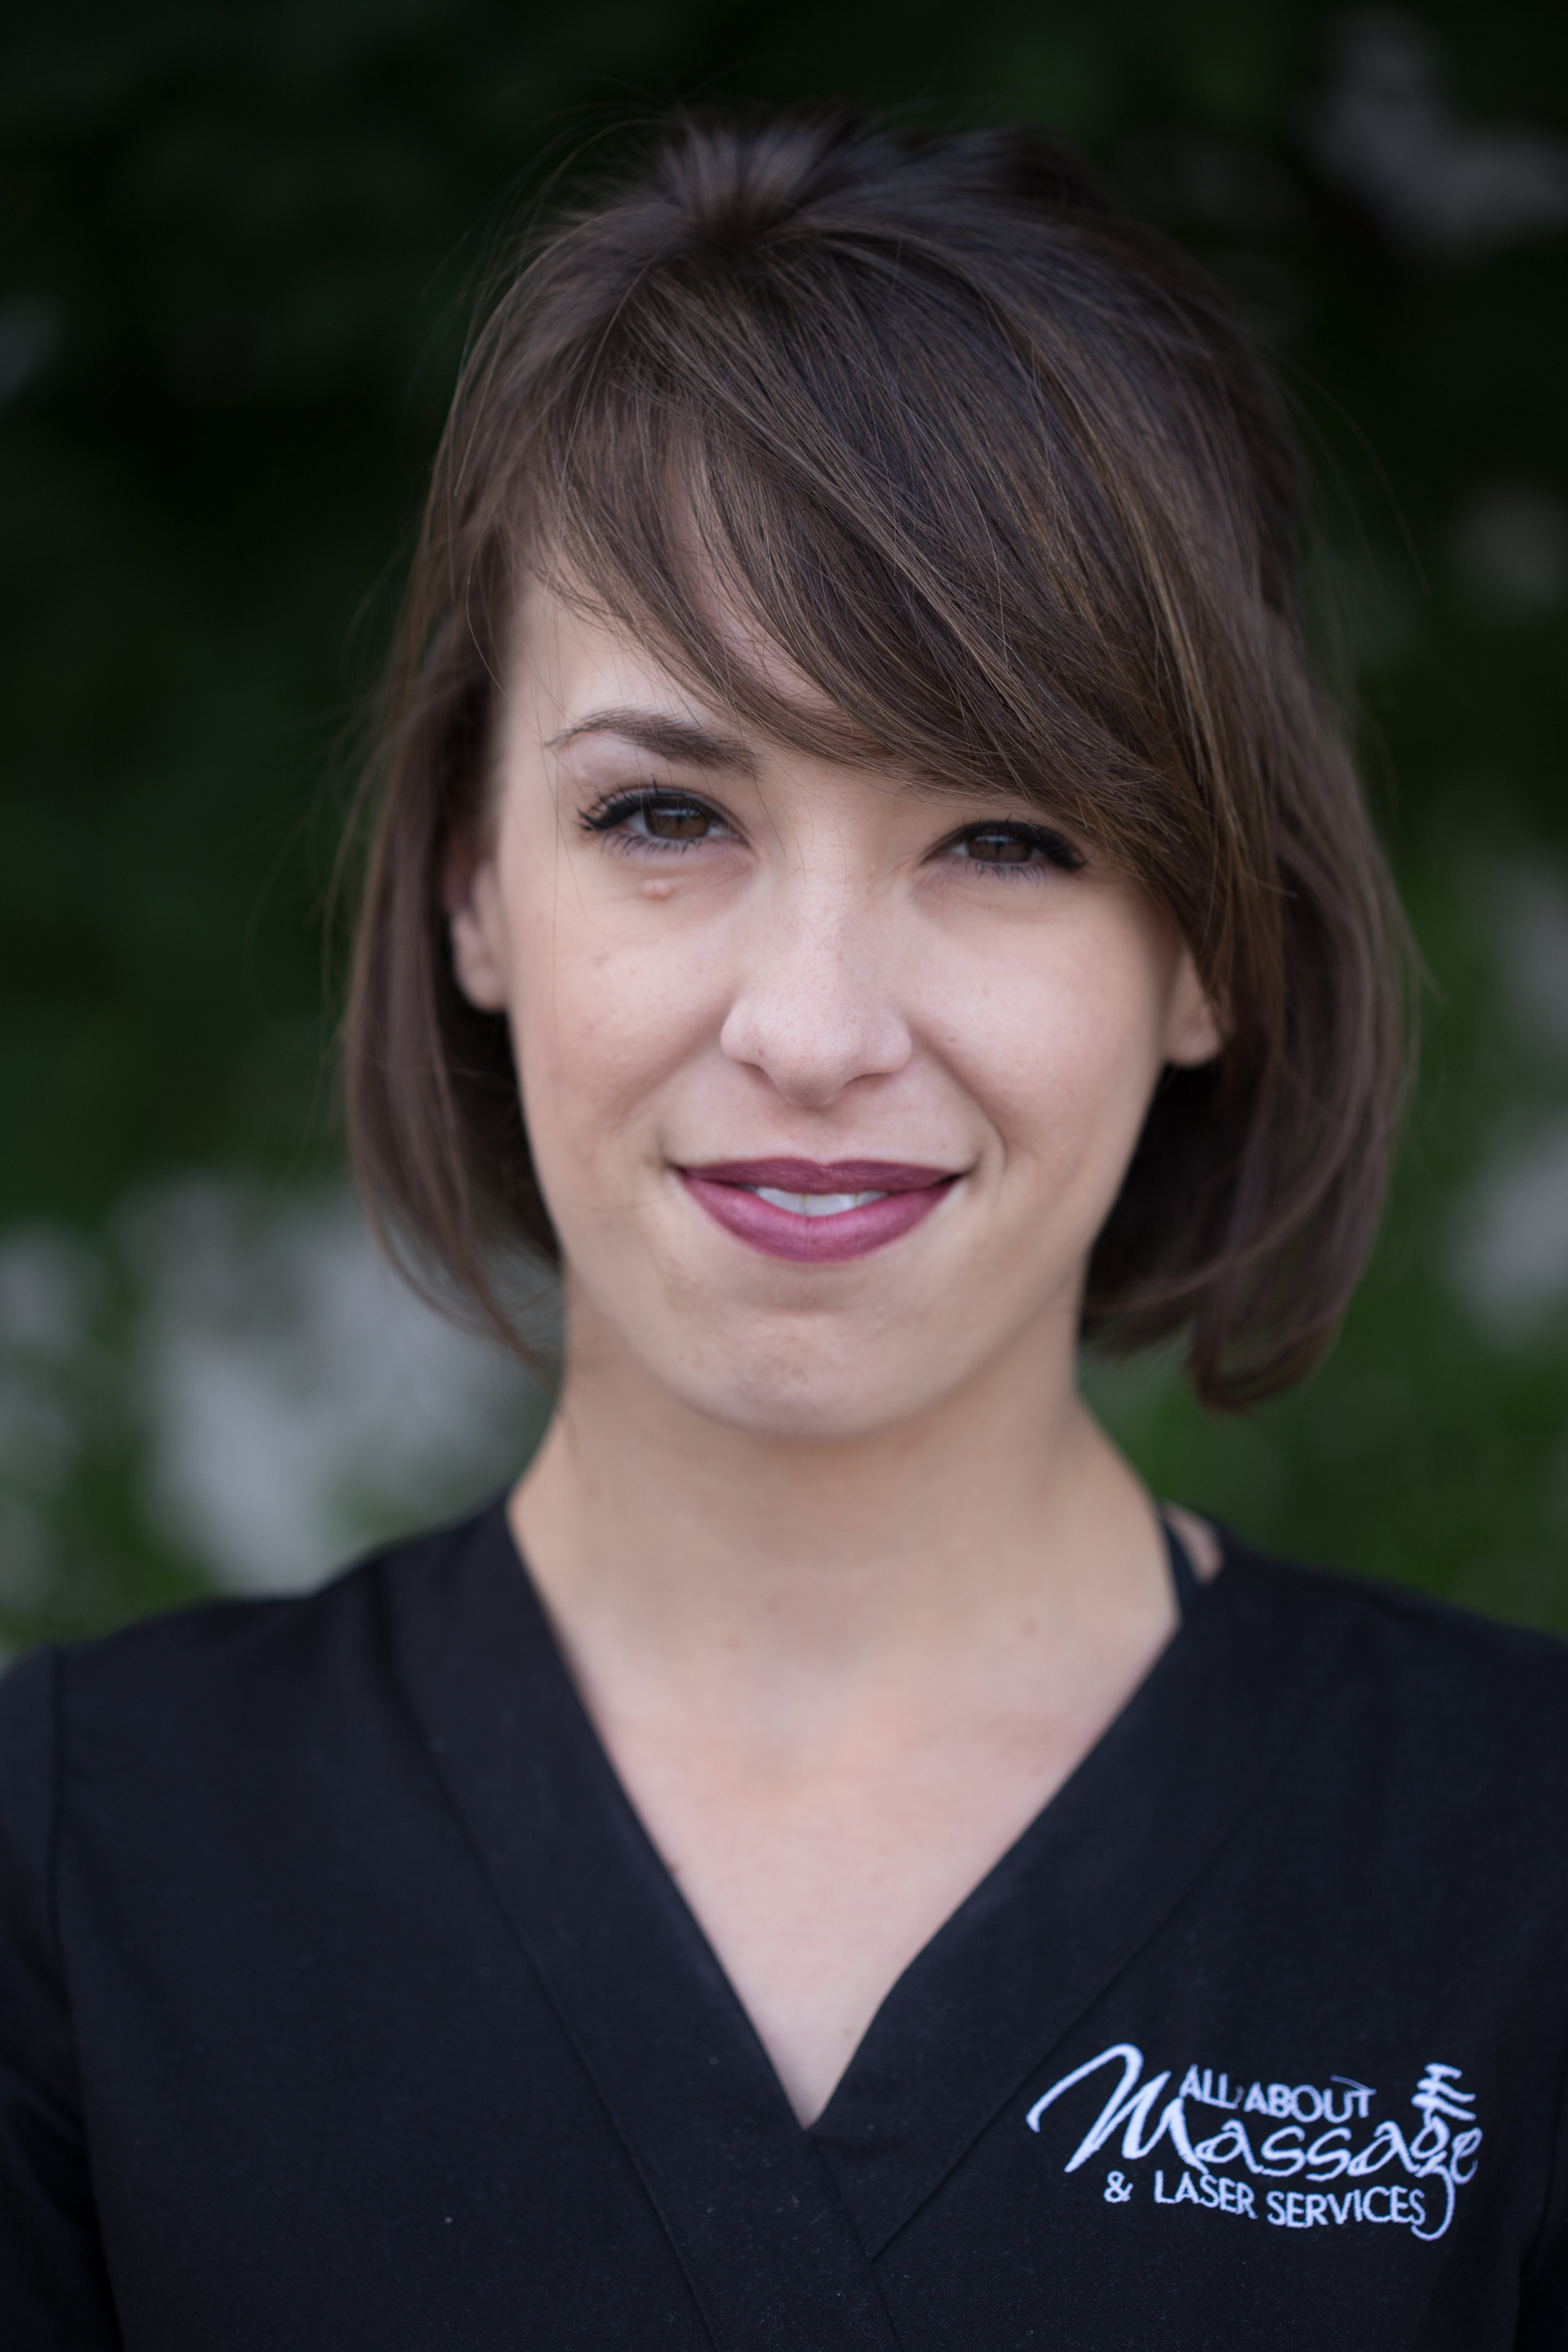 Angelina Labre - Angelina Labre received her certification from the college of hairstyling and aesthetics in Sudbury, in 2010. She has been with the all about massage team since the winter of 2014. Angelina has also been certified in sugaring (hair removal) and aromatherapy. She enjoys spending time with her clients in a relaxing atmosphere, helping them to feel their best whether it is with their foot care, a variety of facial treatments or her personal favourite, the essential touch. This service uses a variety of specially chosen essential oils to help restore balance and boost the immune system. Angelina also performs full body exfoliation, as well as manicures, threading and waxing.Angelina enjoys spending time with her young daughter as well as her new passion, sewing!